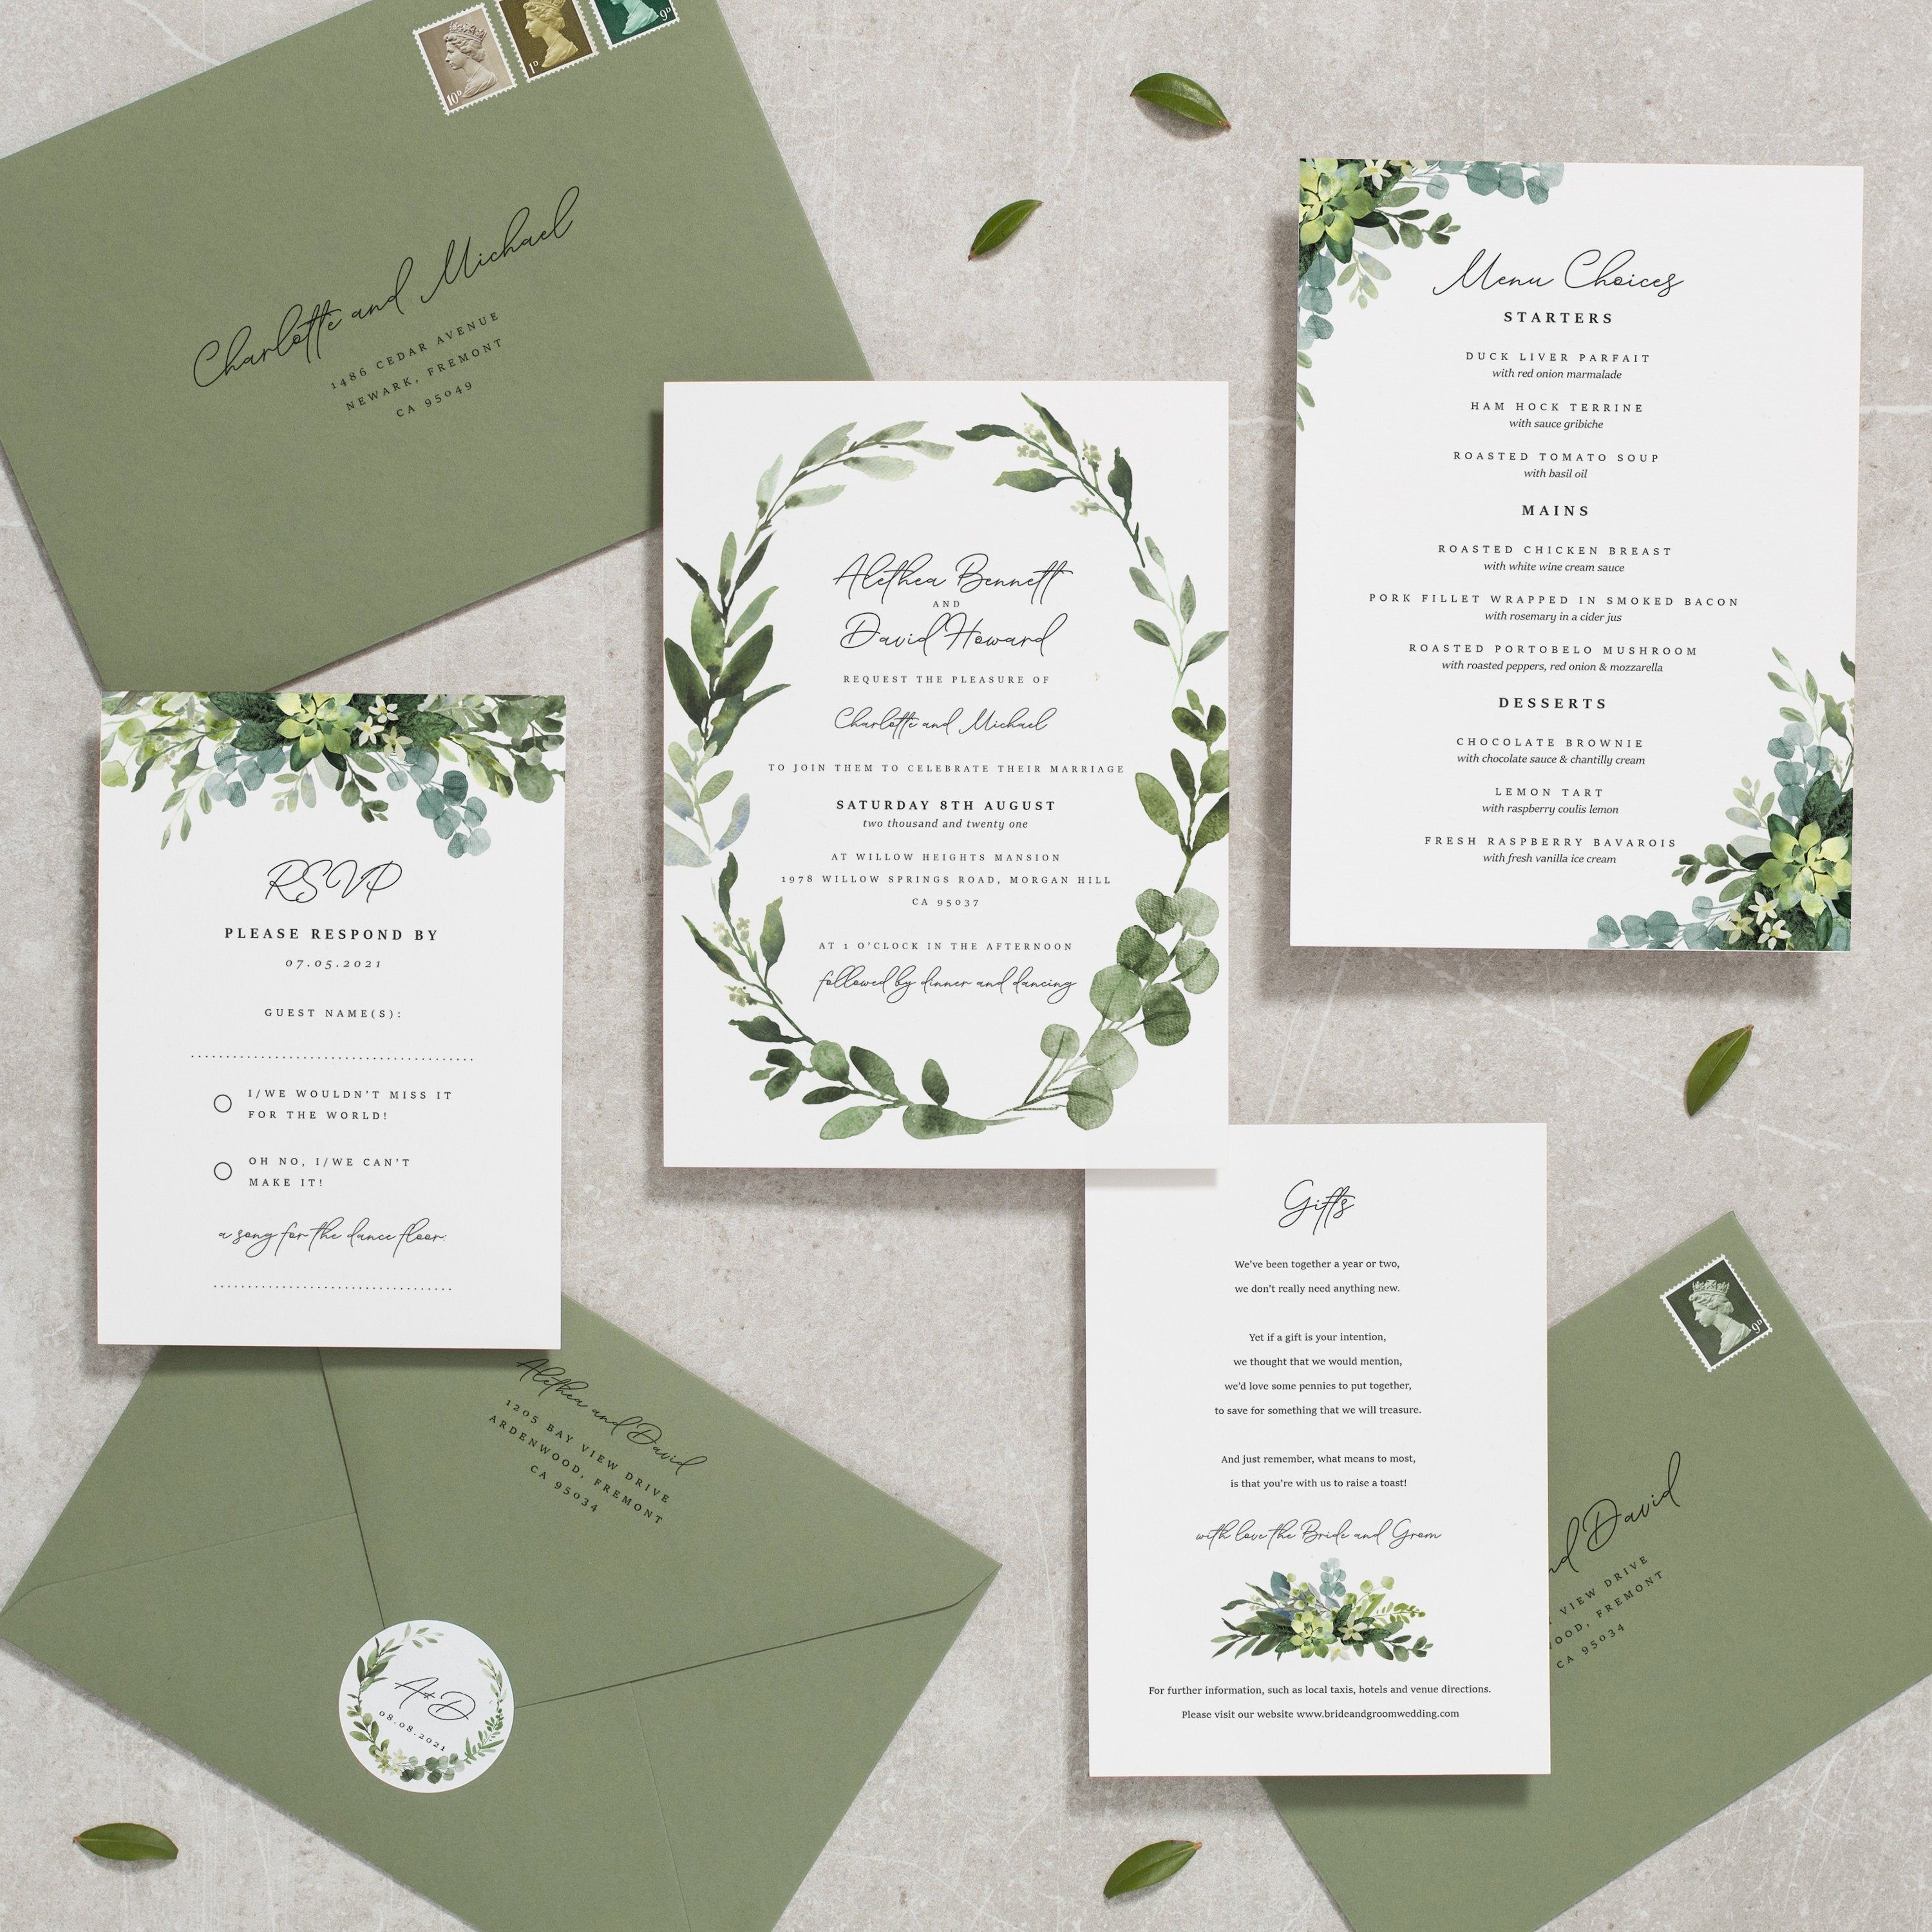 Greenery Wedding Invitation Set Green Leaf Leaves Wedding Invitations Invites Foliage Printed Olive Green Alethea Wedding Invitations Wedding Invitation Sets Greenery Wedding Invitations